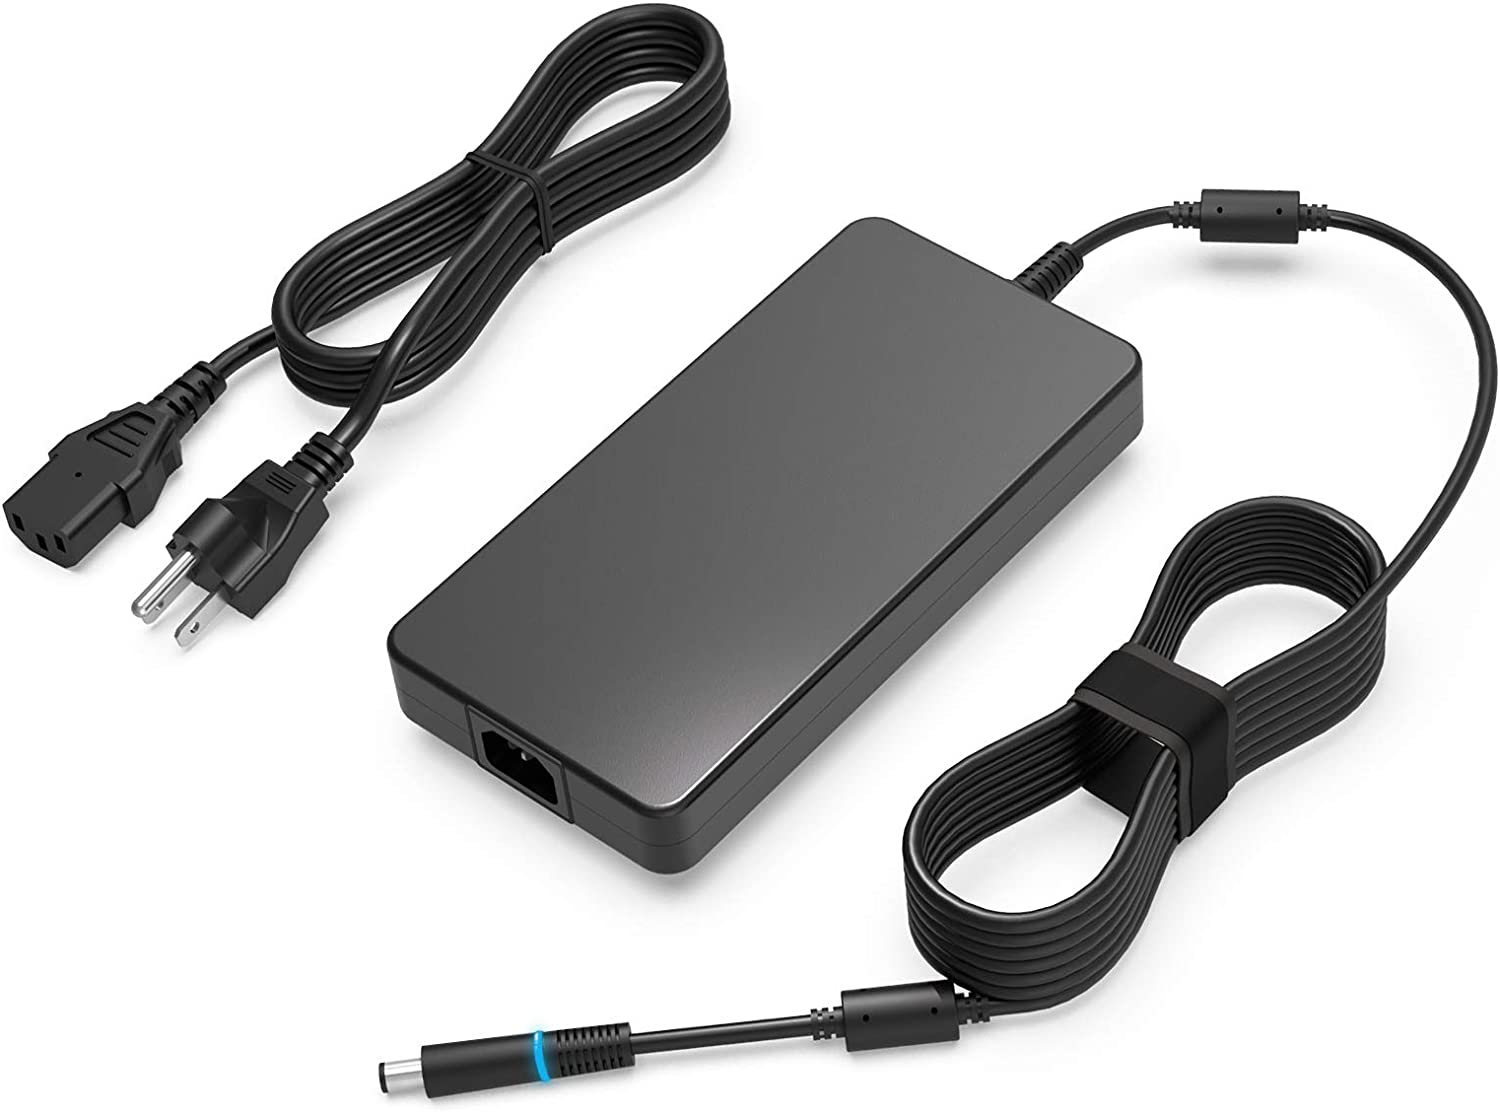 Alienware 240W 180W AC Adapter Laptop Charger Fit for Dell Alienware X51 M15 17 15 R3 R4 R5 R2 13 M17 M17X M18X GA240PE1-00 Precision M6800 M6500 M6600 M6700 M6400 J211H PA-9E Power Supply Cord